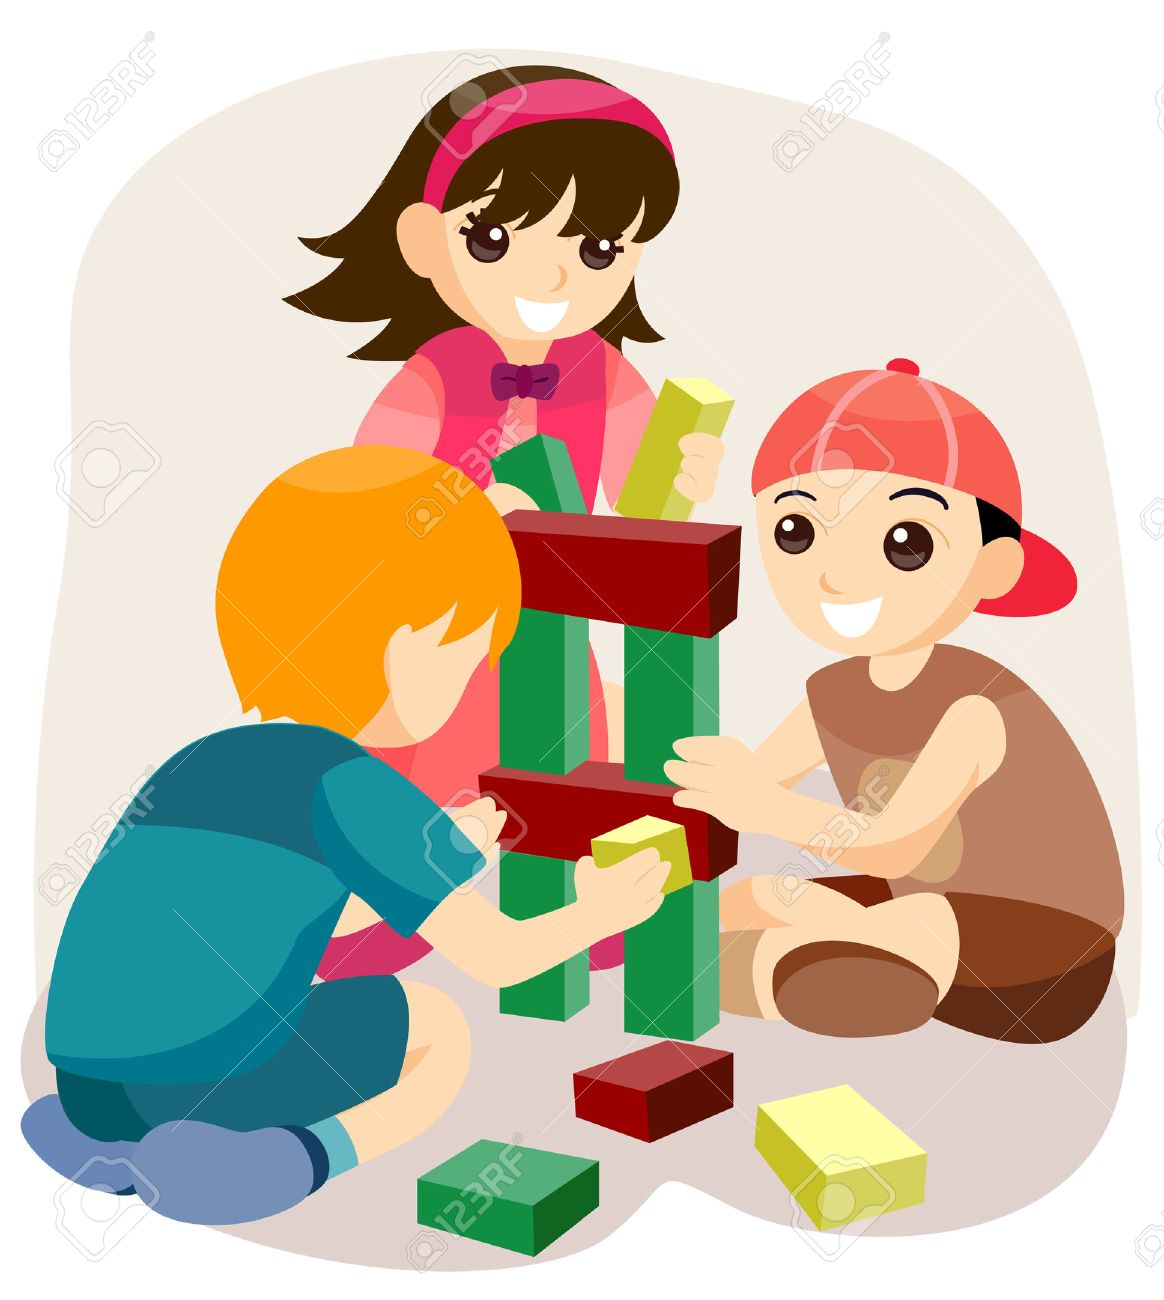 Children playing with Building Blocks with Clipping Path.